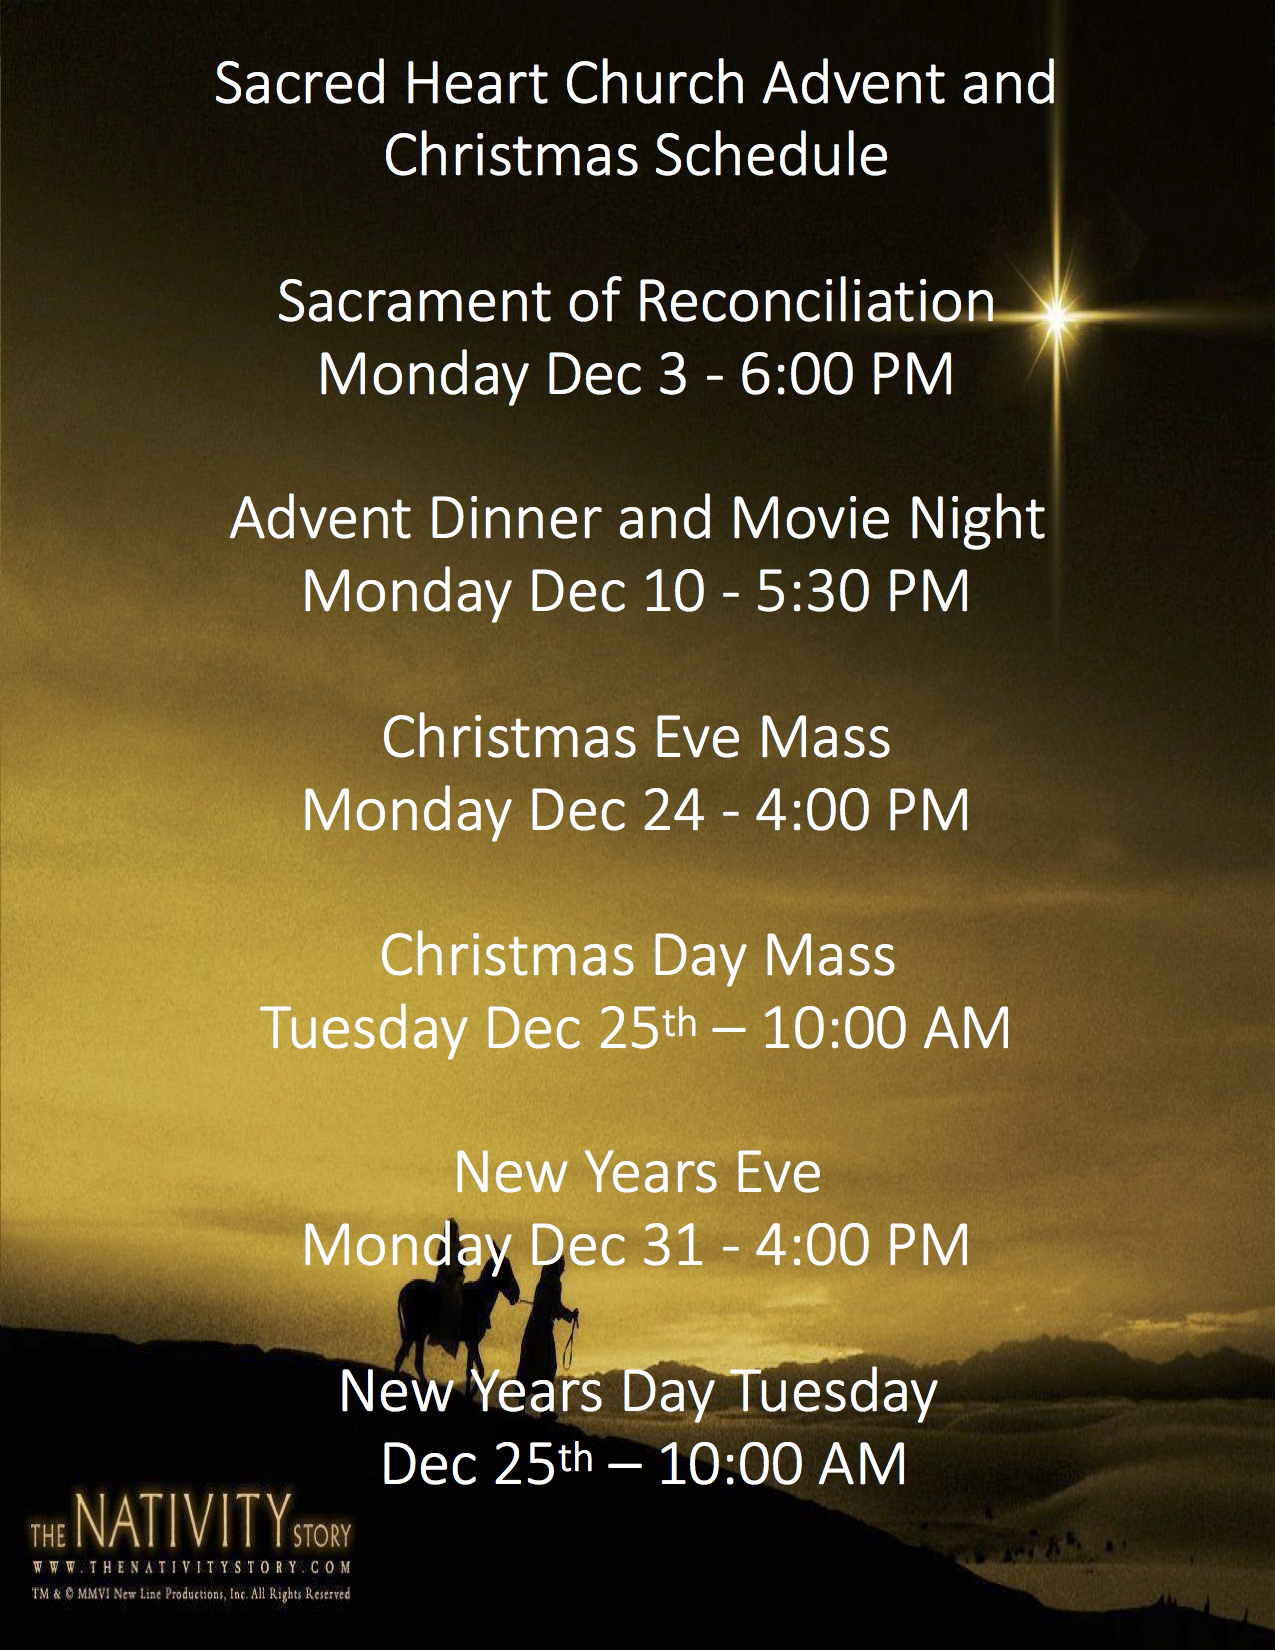 Sacred Heart Advent and Christmas Schedule